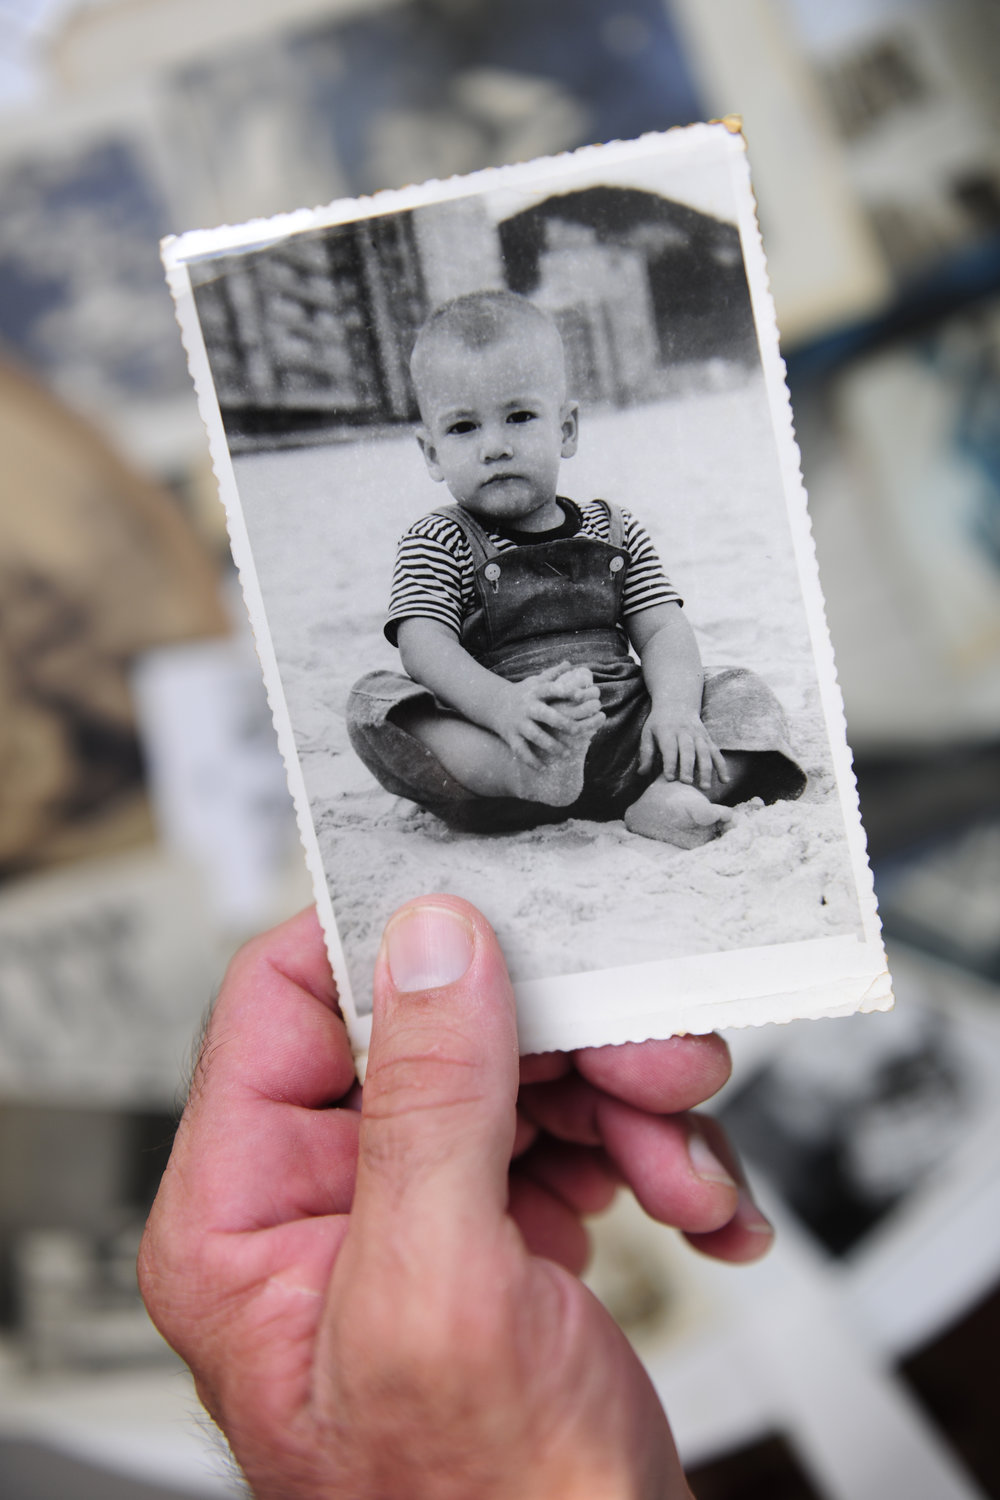 Get your family's memories out of the shoebox and on to your computer. - Got photos? Negatives? We scan them. Keepsake Solutions hand checks and digitally preserves your photos bringing new life to those treasured memories.